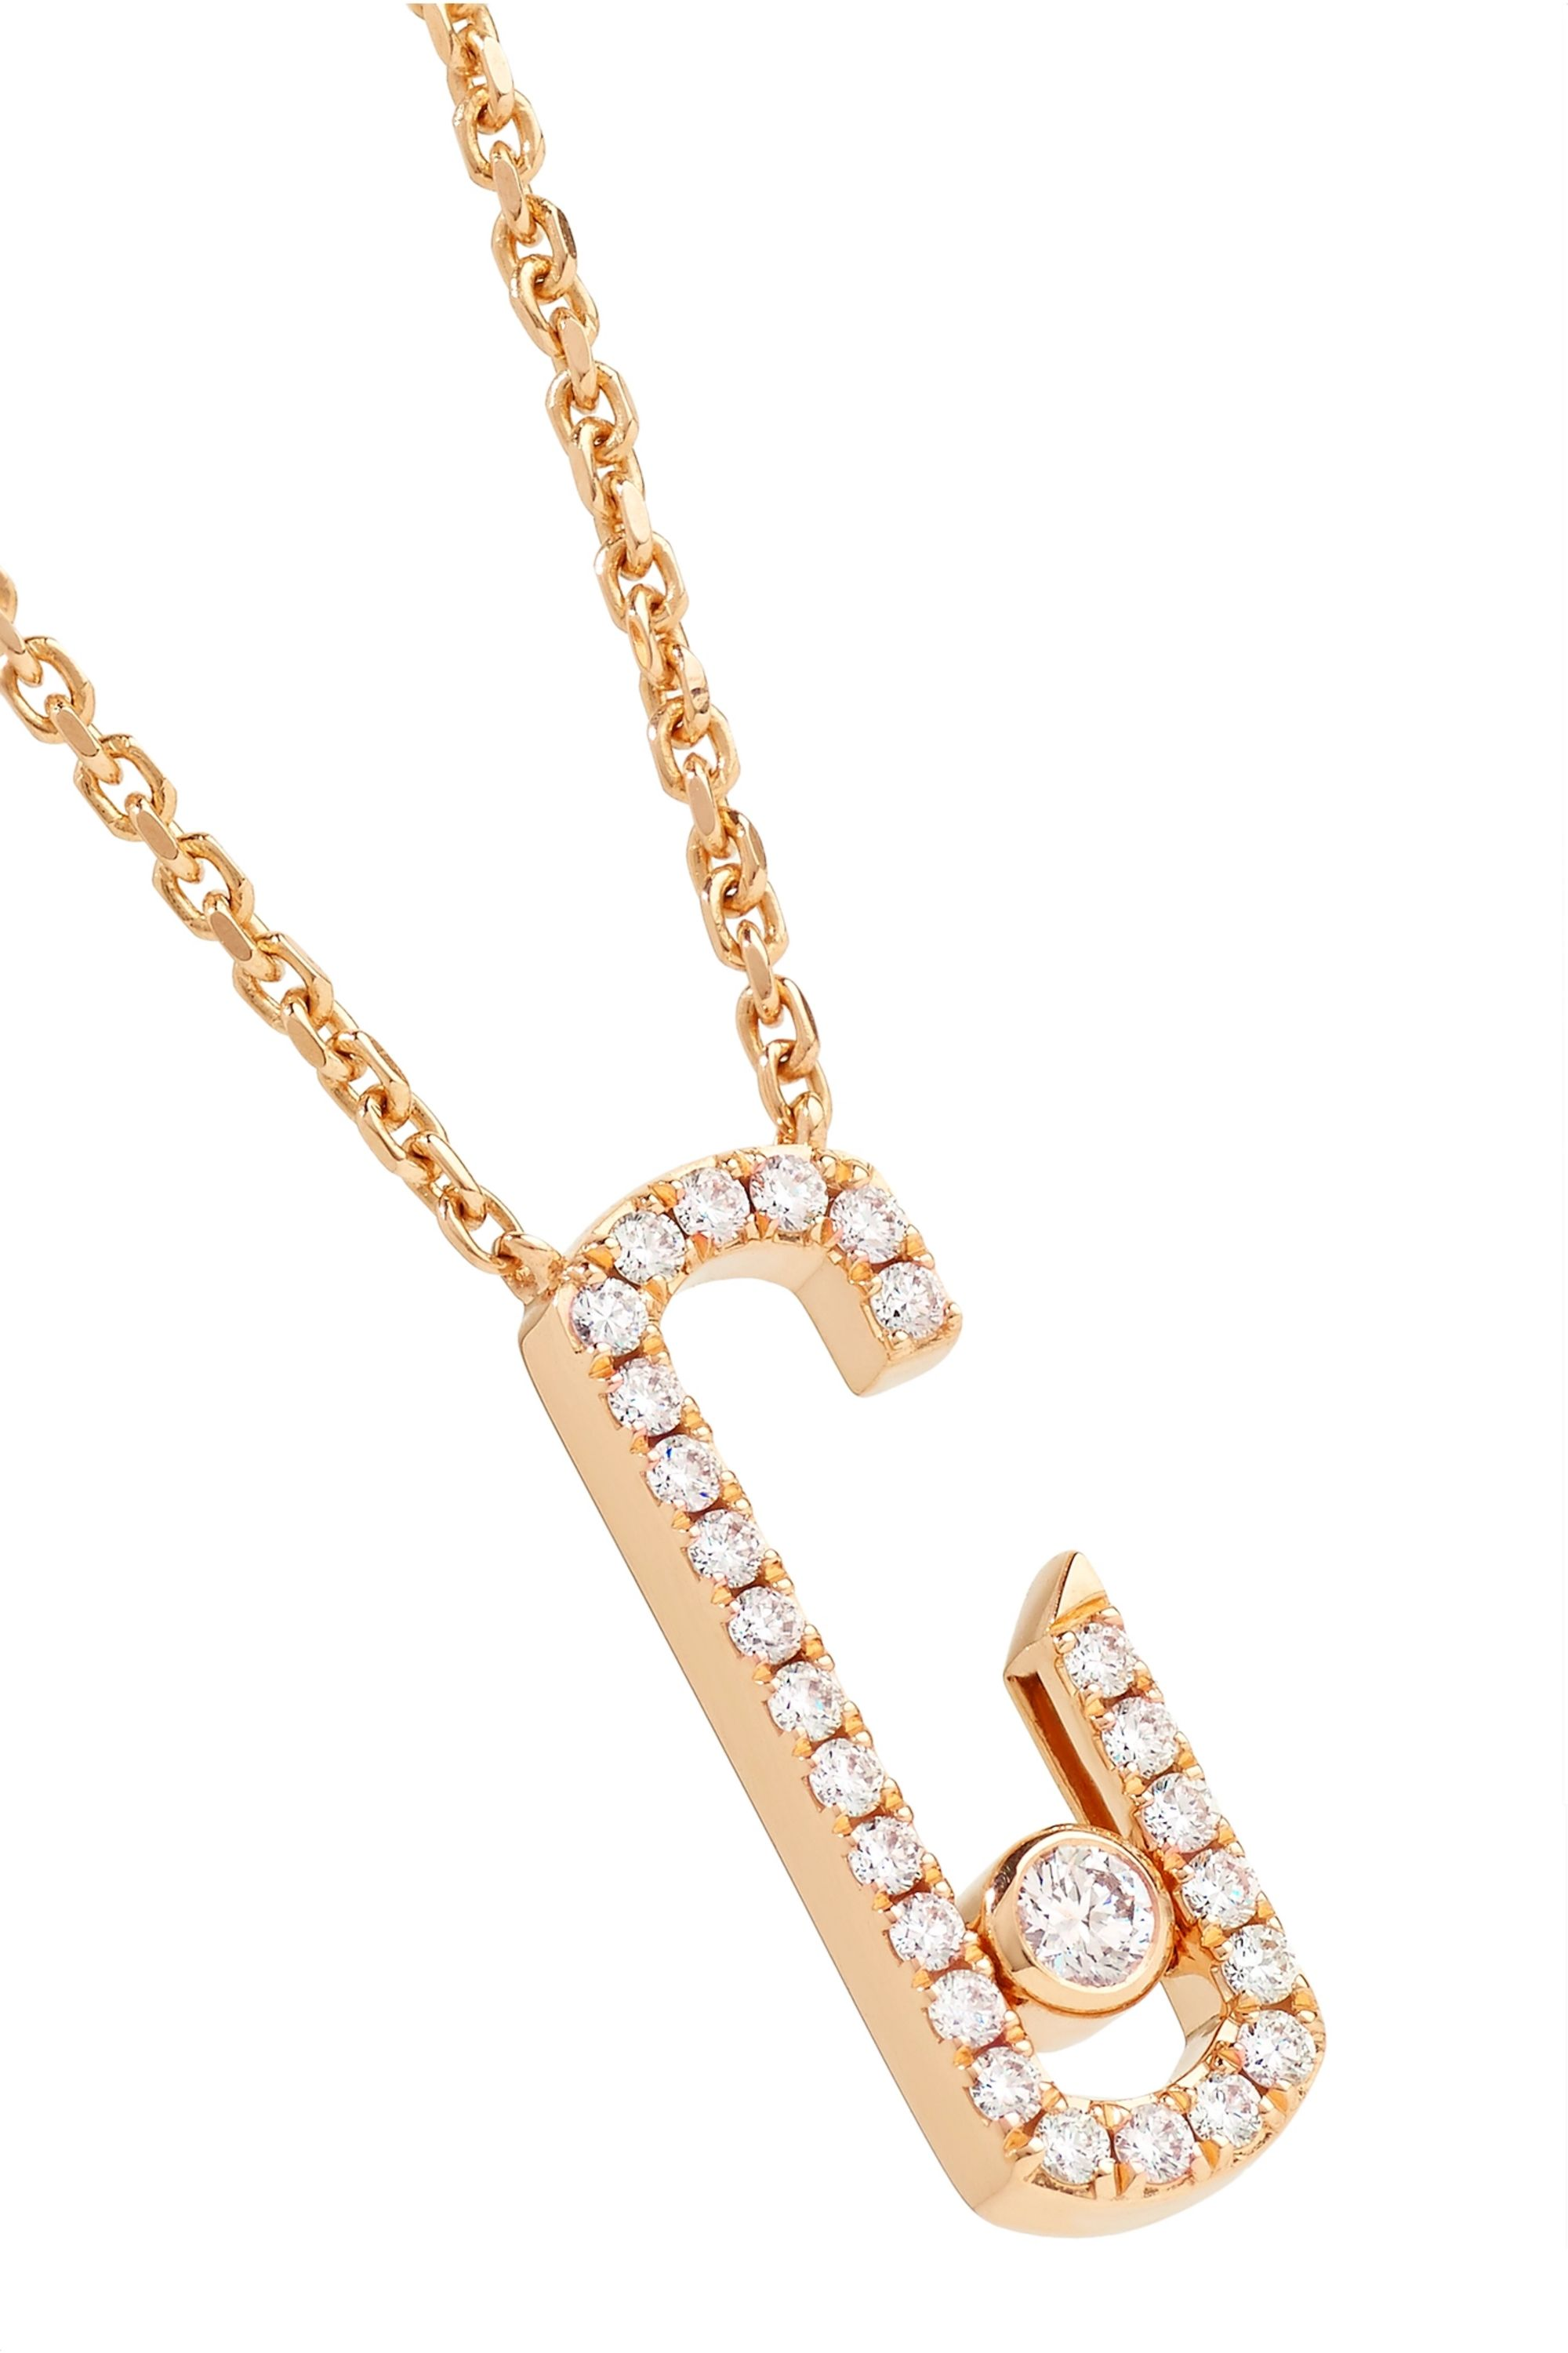 Messika + Gigi Hadid Move Addiction 18-karat rose gold diamond necklace